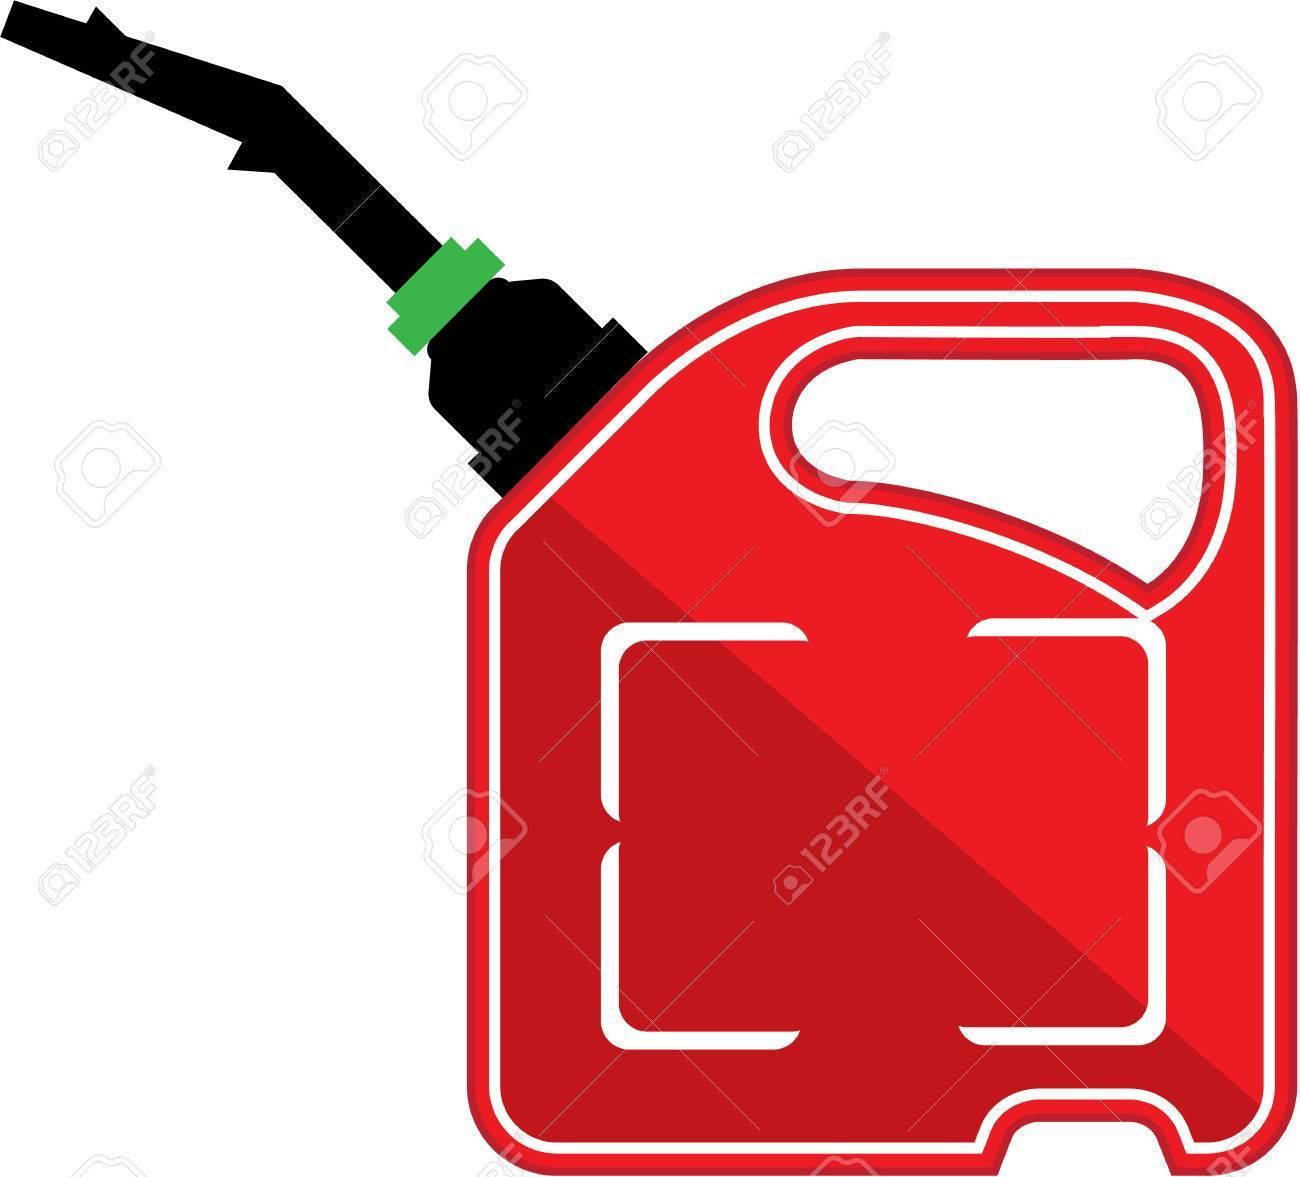 Fuel can clipart svg black and white download Fuel can vector illustration clip-art image » Clipart Portal svg black and white download